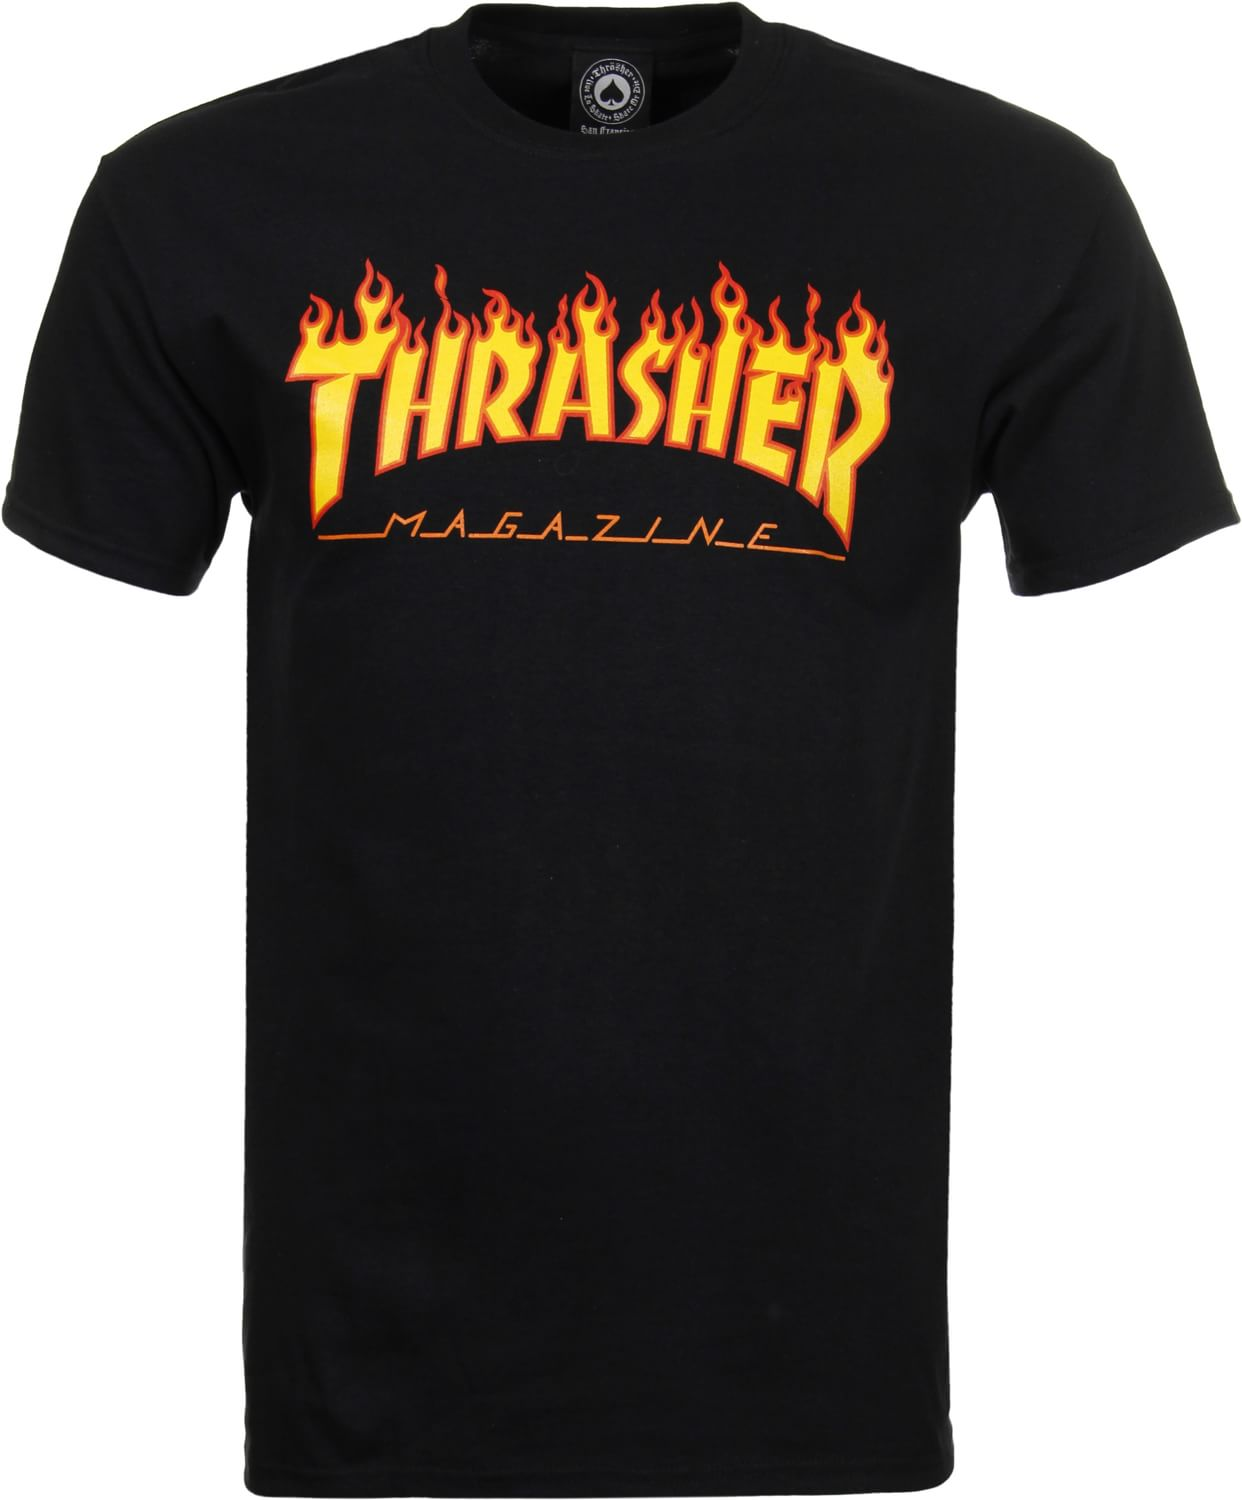 Thrasher flame t shirt free shipping for On fire brand t shirts